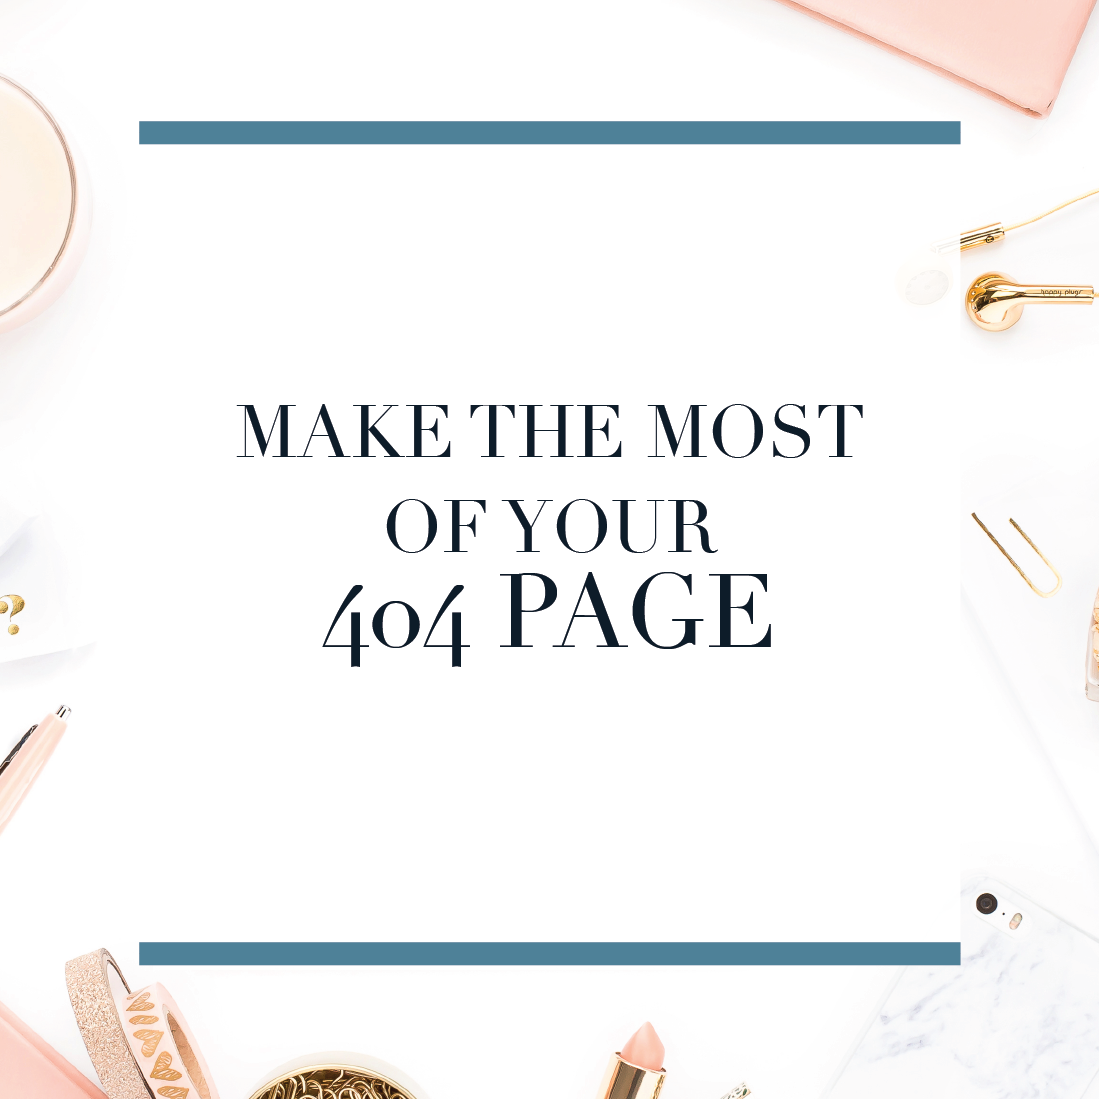 Make the Most of Your 404 Page